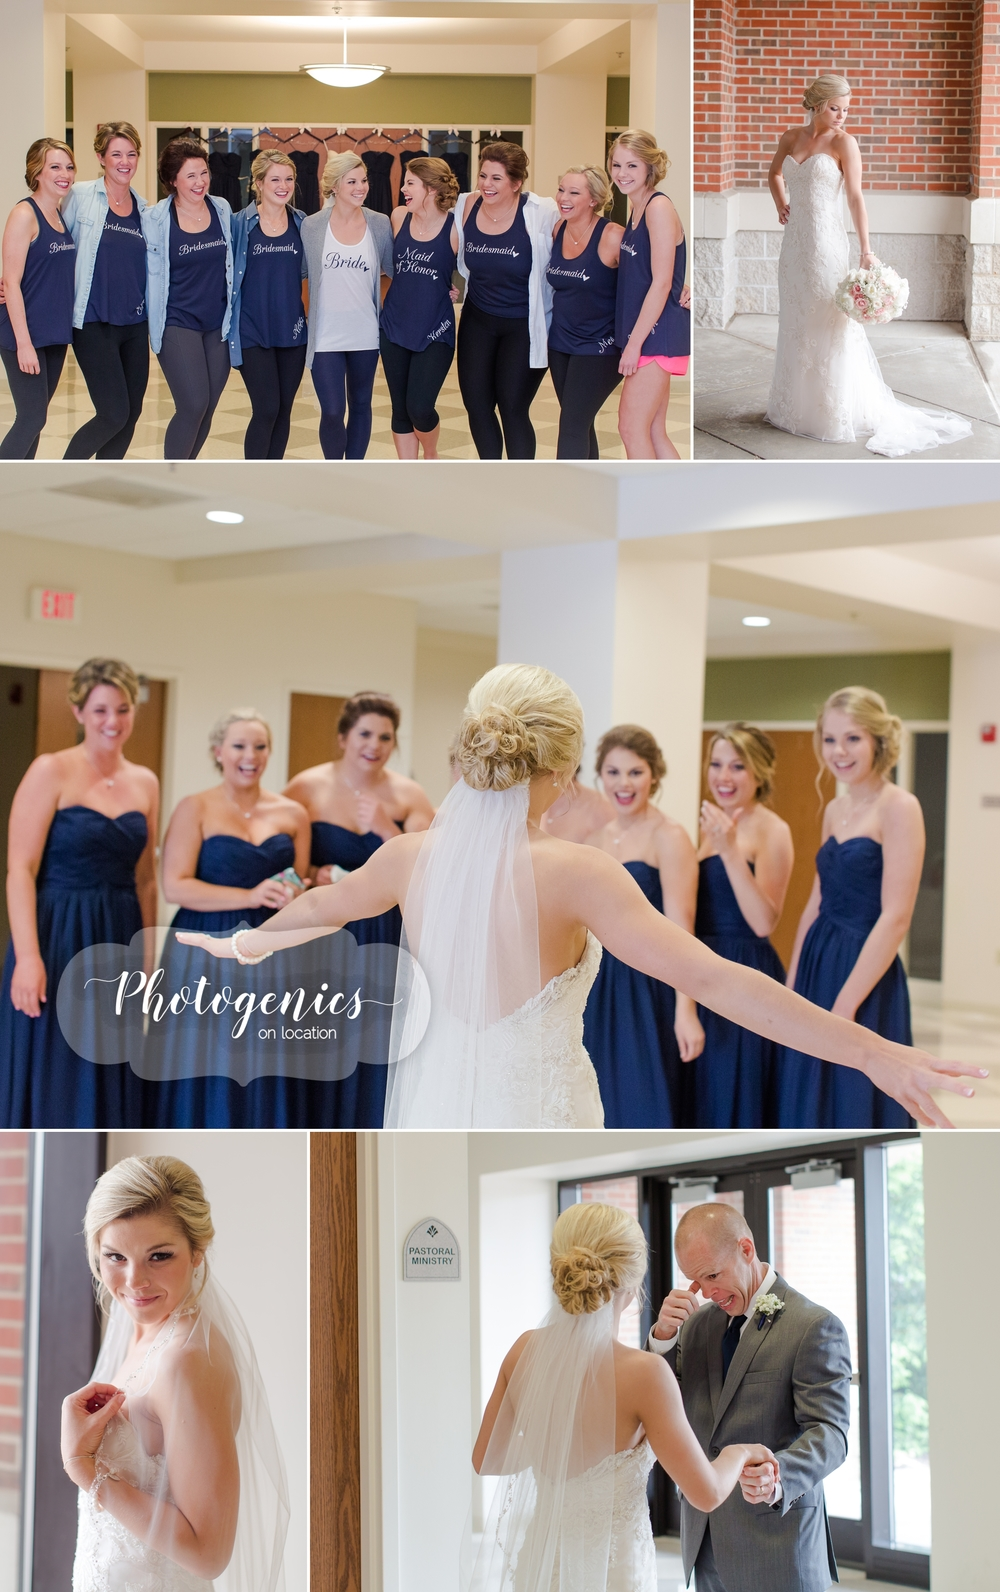 wedding_spring_photo_ideas_missouri_navy_large_wedding_party_bride_groom_bridesmaids_groomsmen 4.jpg